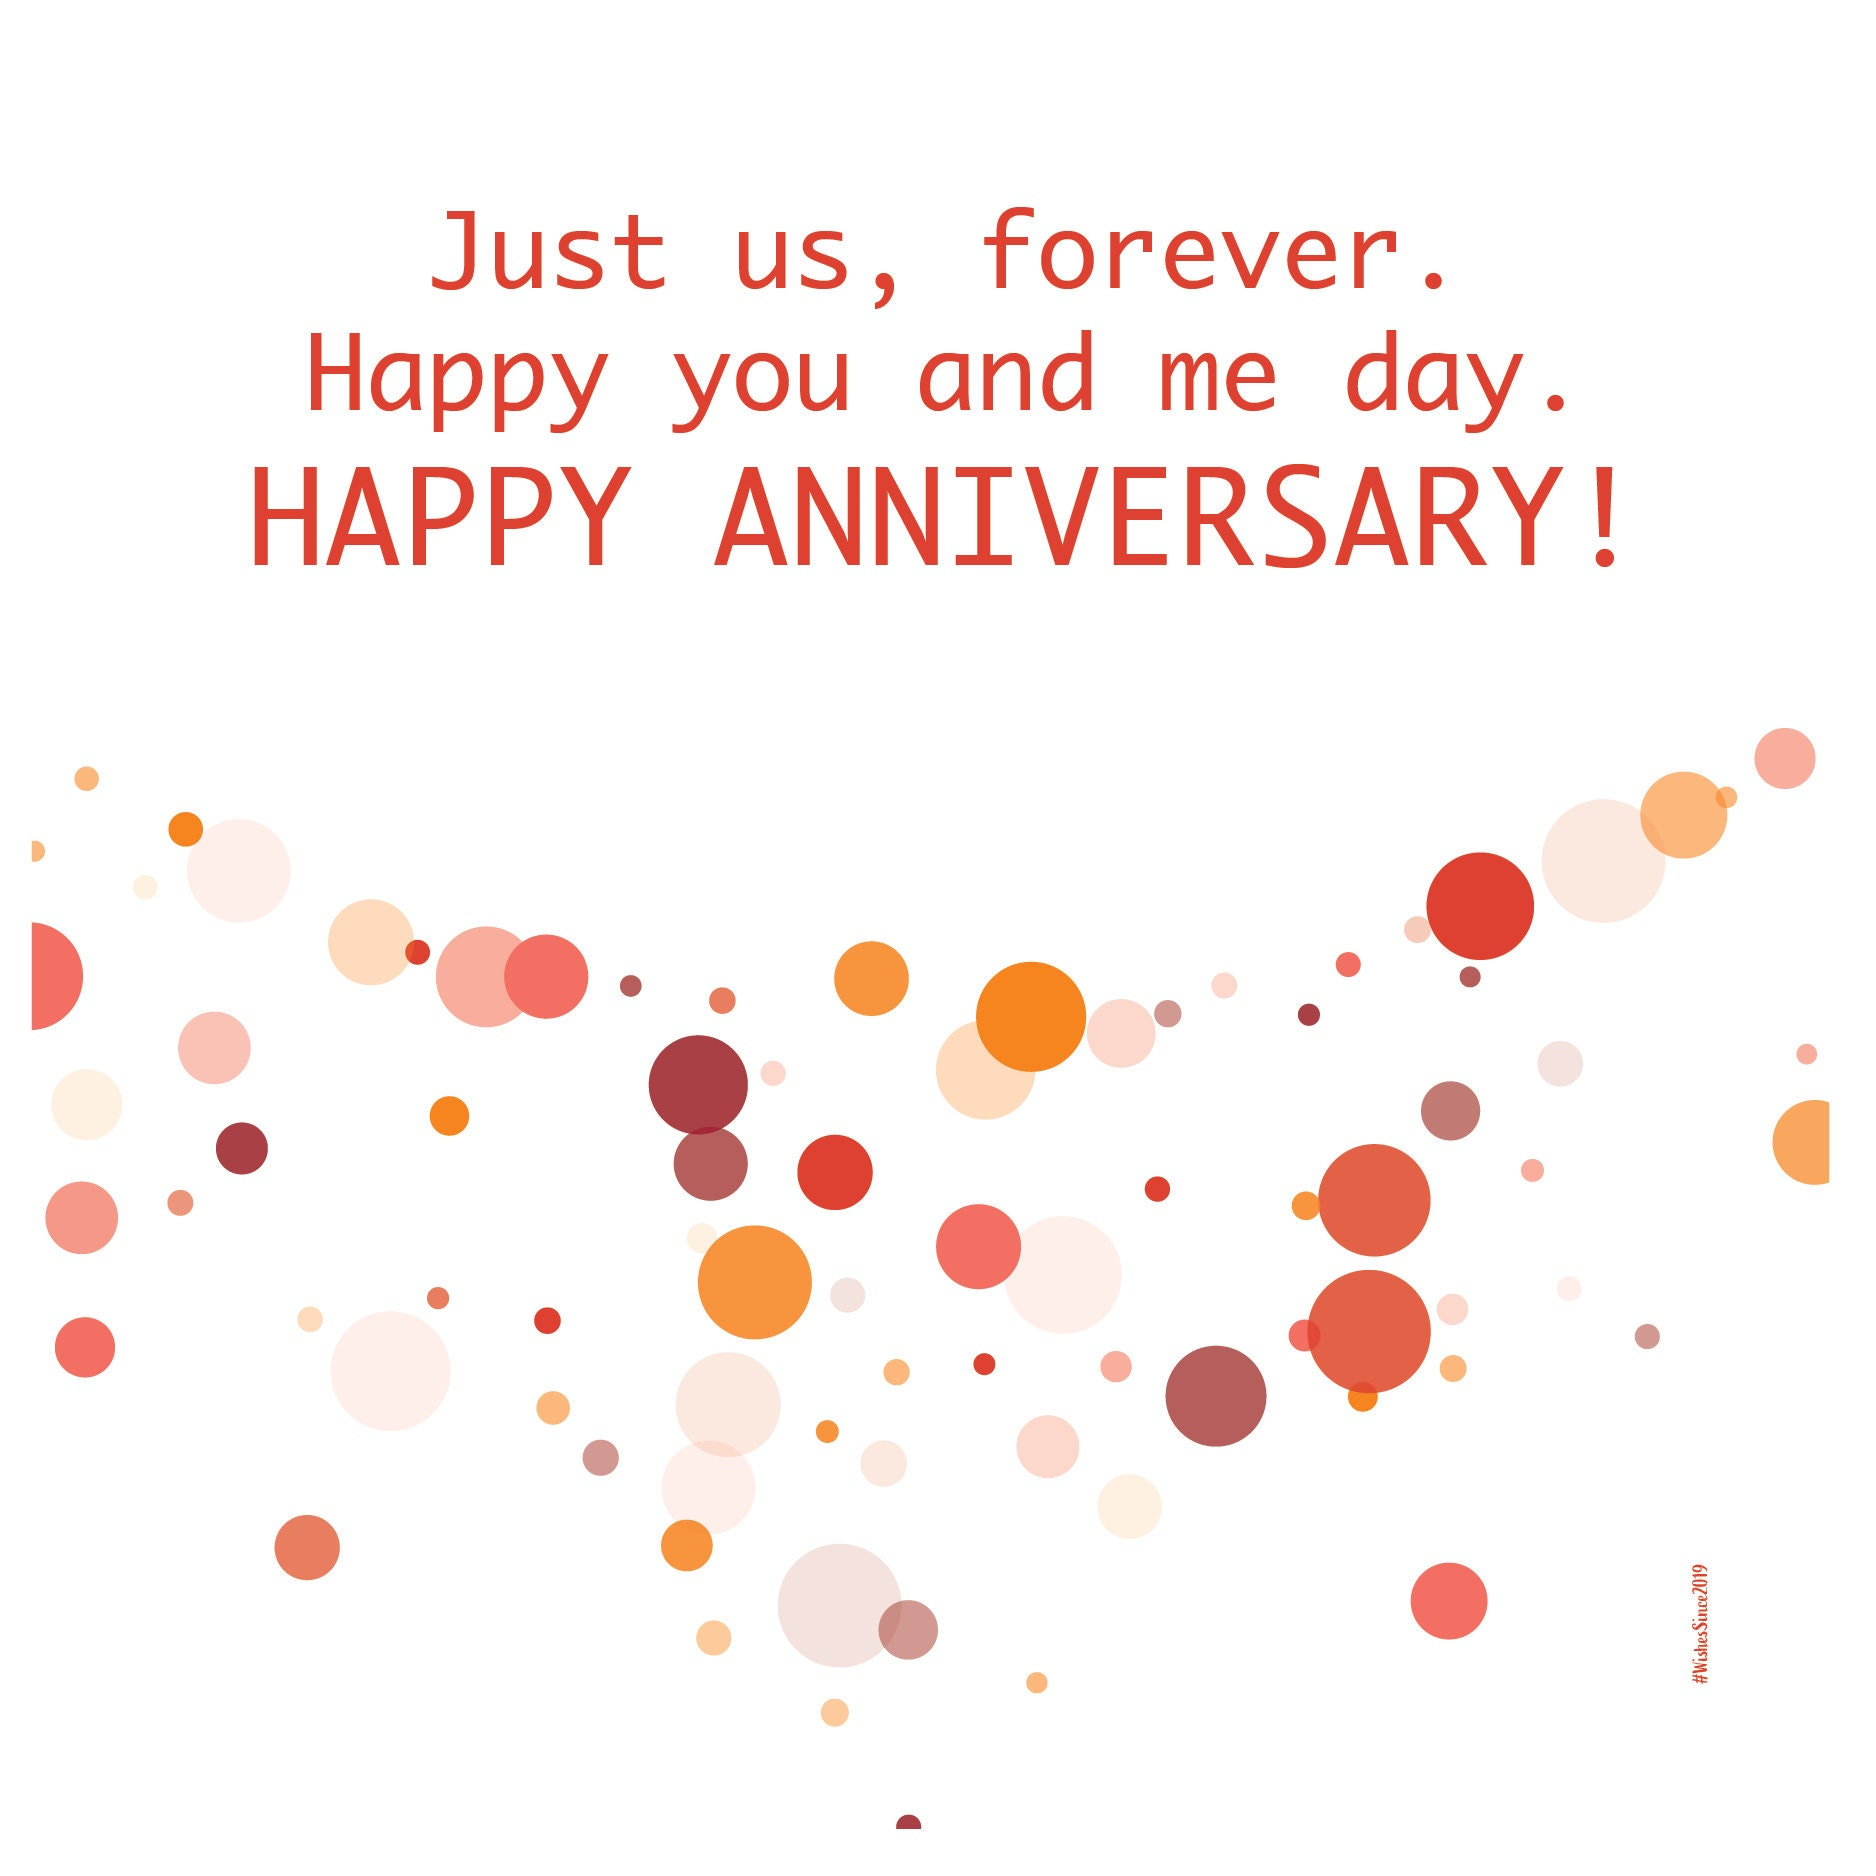 digital wedding anniversary card wishes instant download